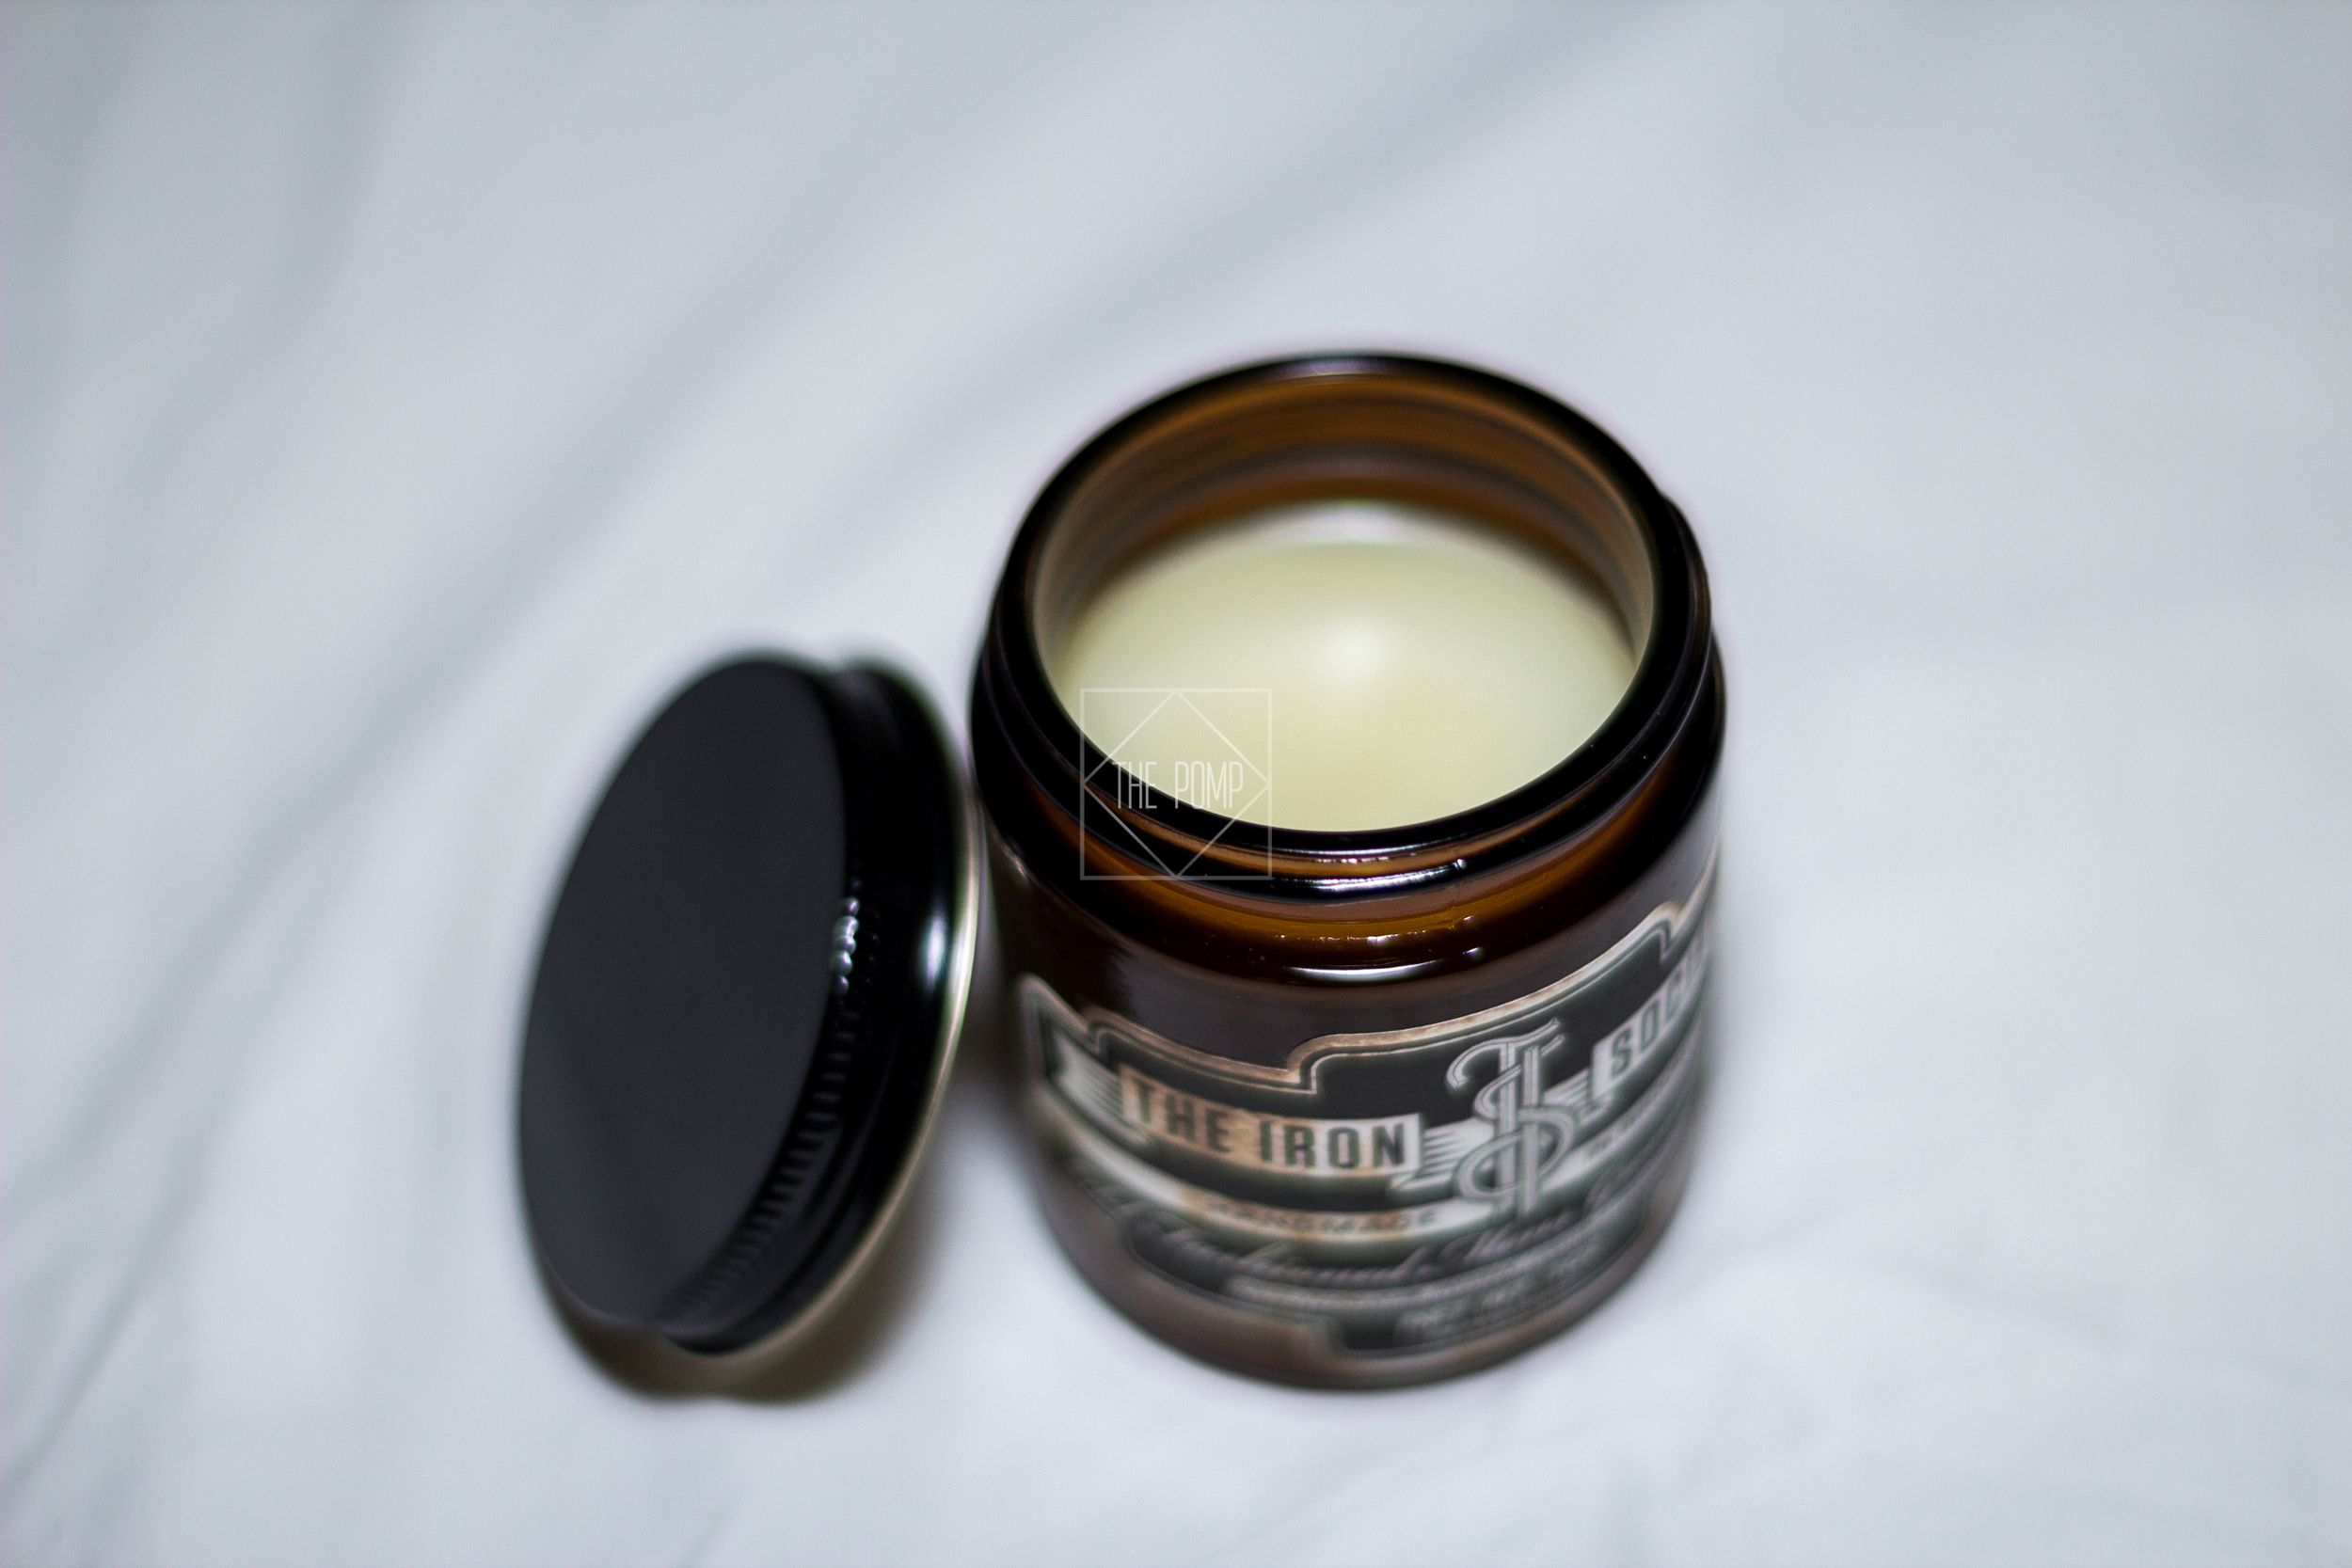 The Iron Society Firm Hold Pomade texture